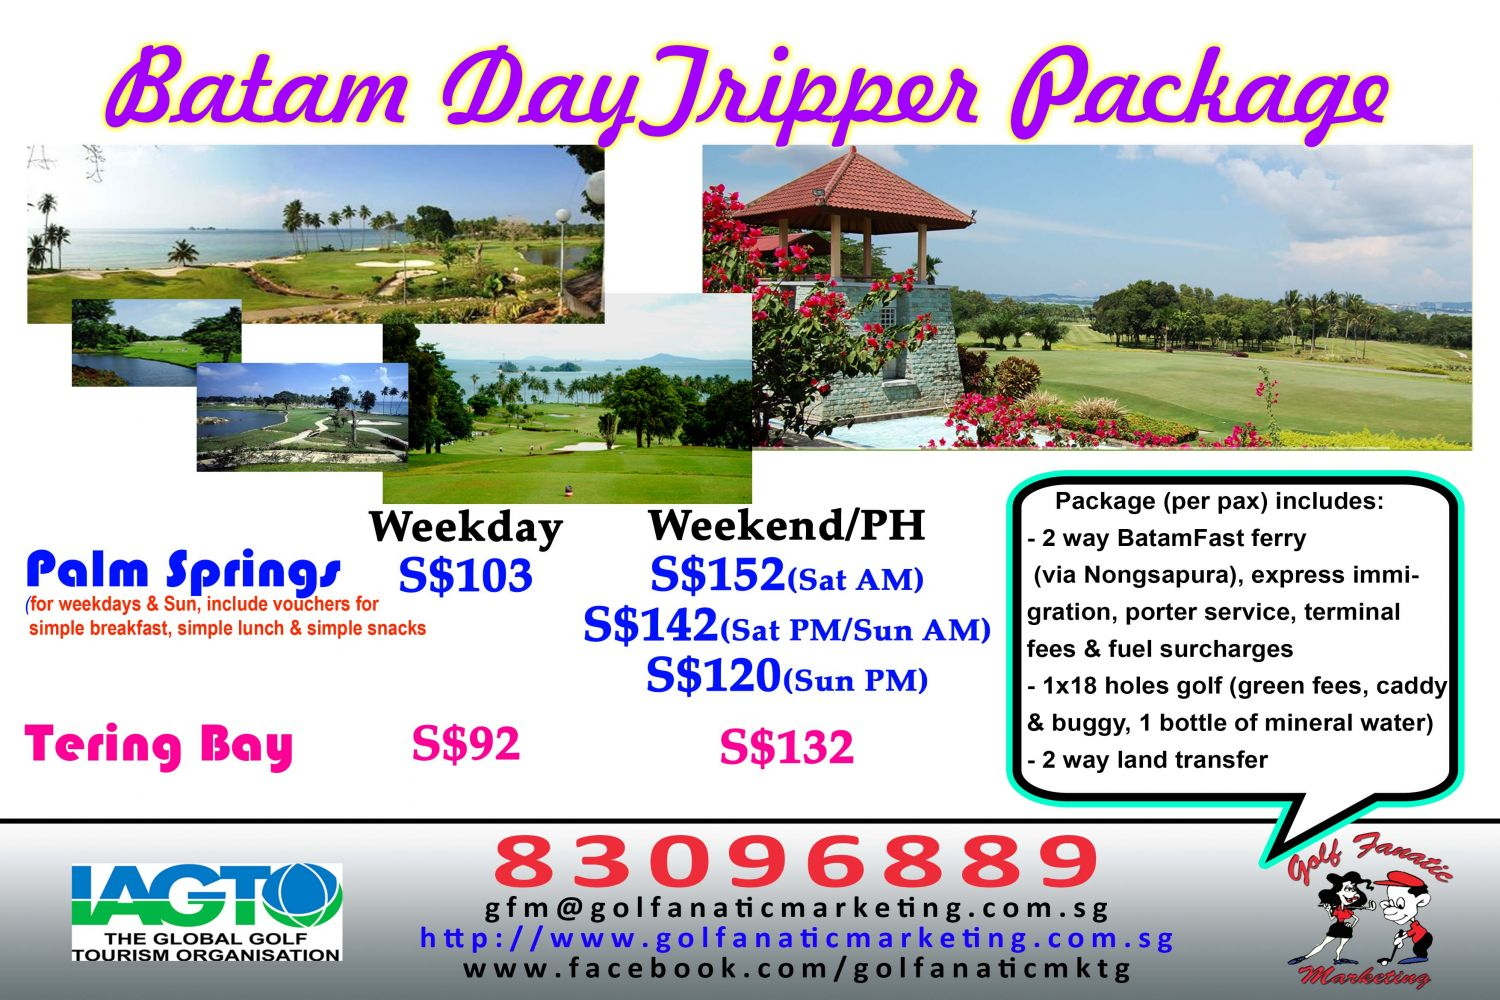 Golf Fanatic Marketing Indonesia Golf Packages